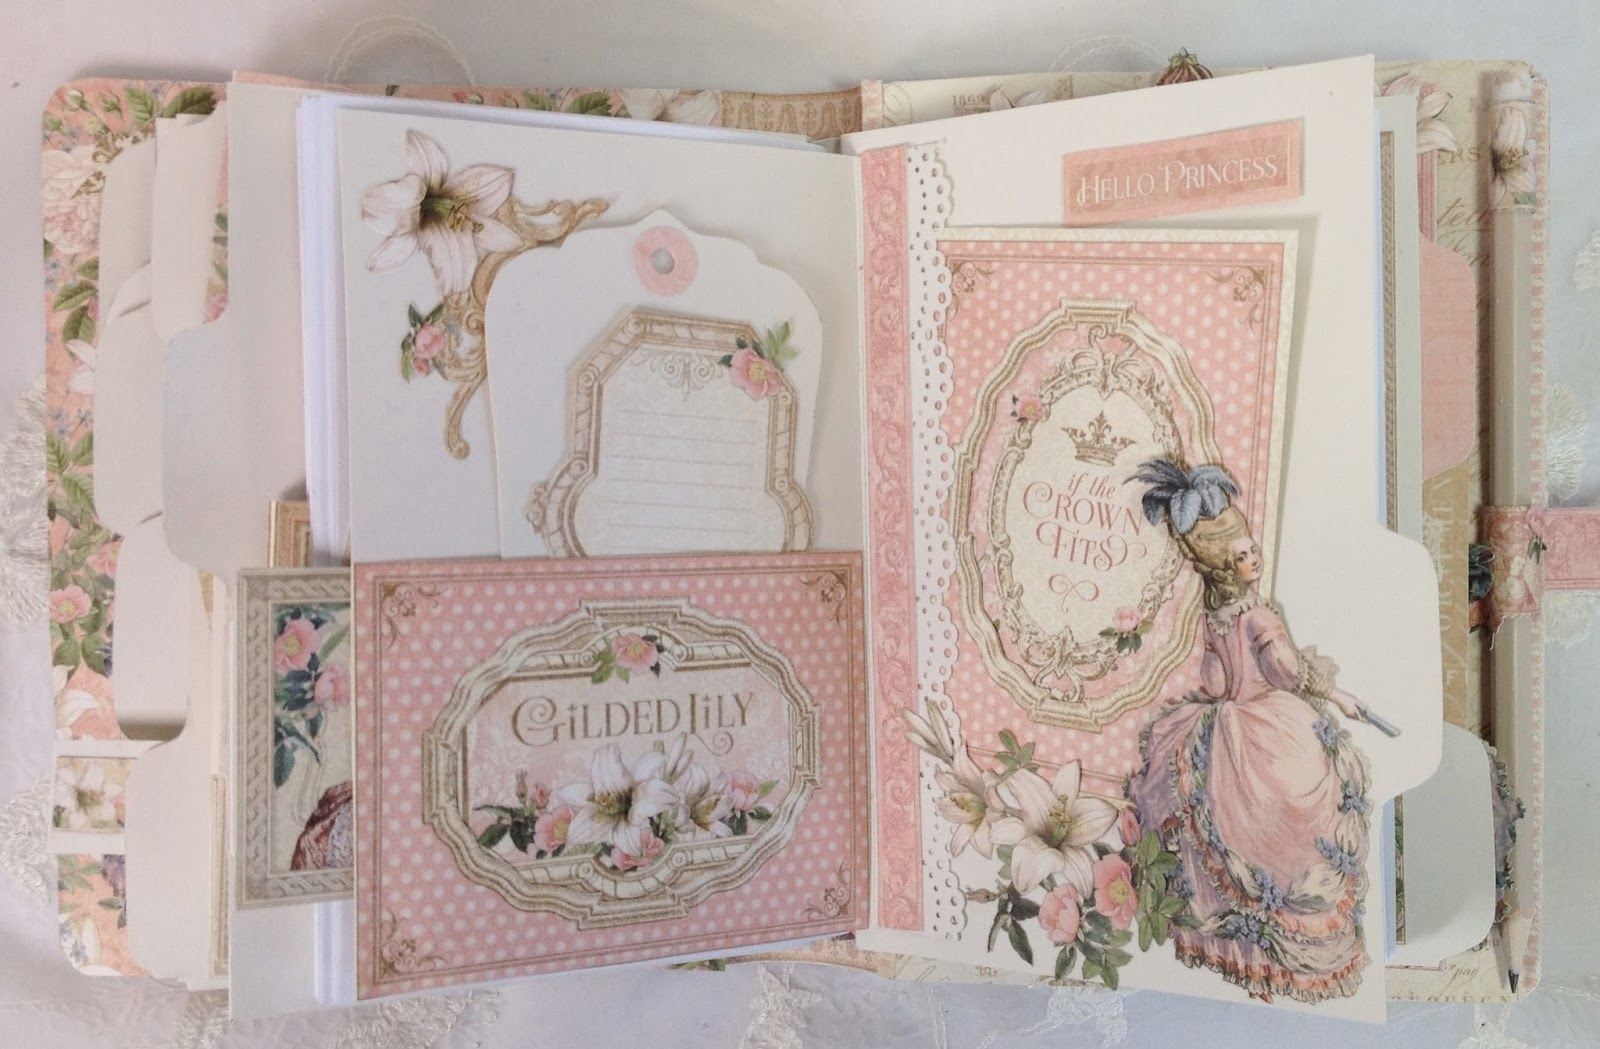 Scrapbook ideas romantic - Here I Made A Flip On The File Folder Page And Inside There Is A Pocket Punched The Hinge To Make An Other Pocket On The Right Side And The Punch Is From